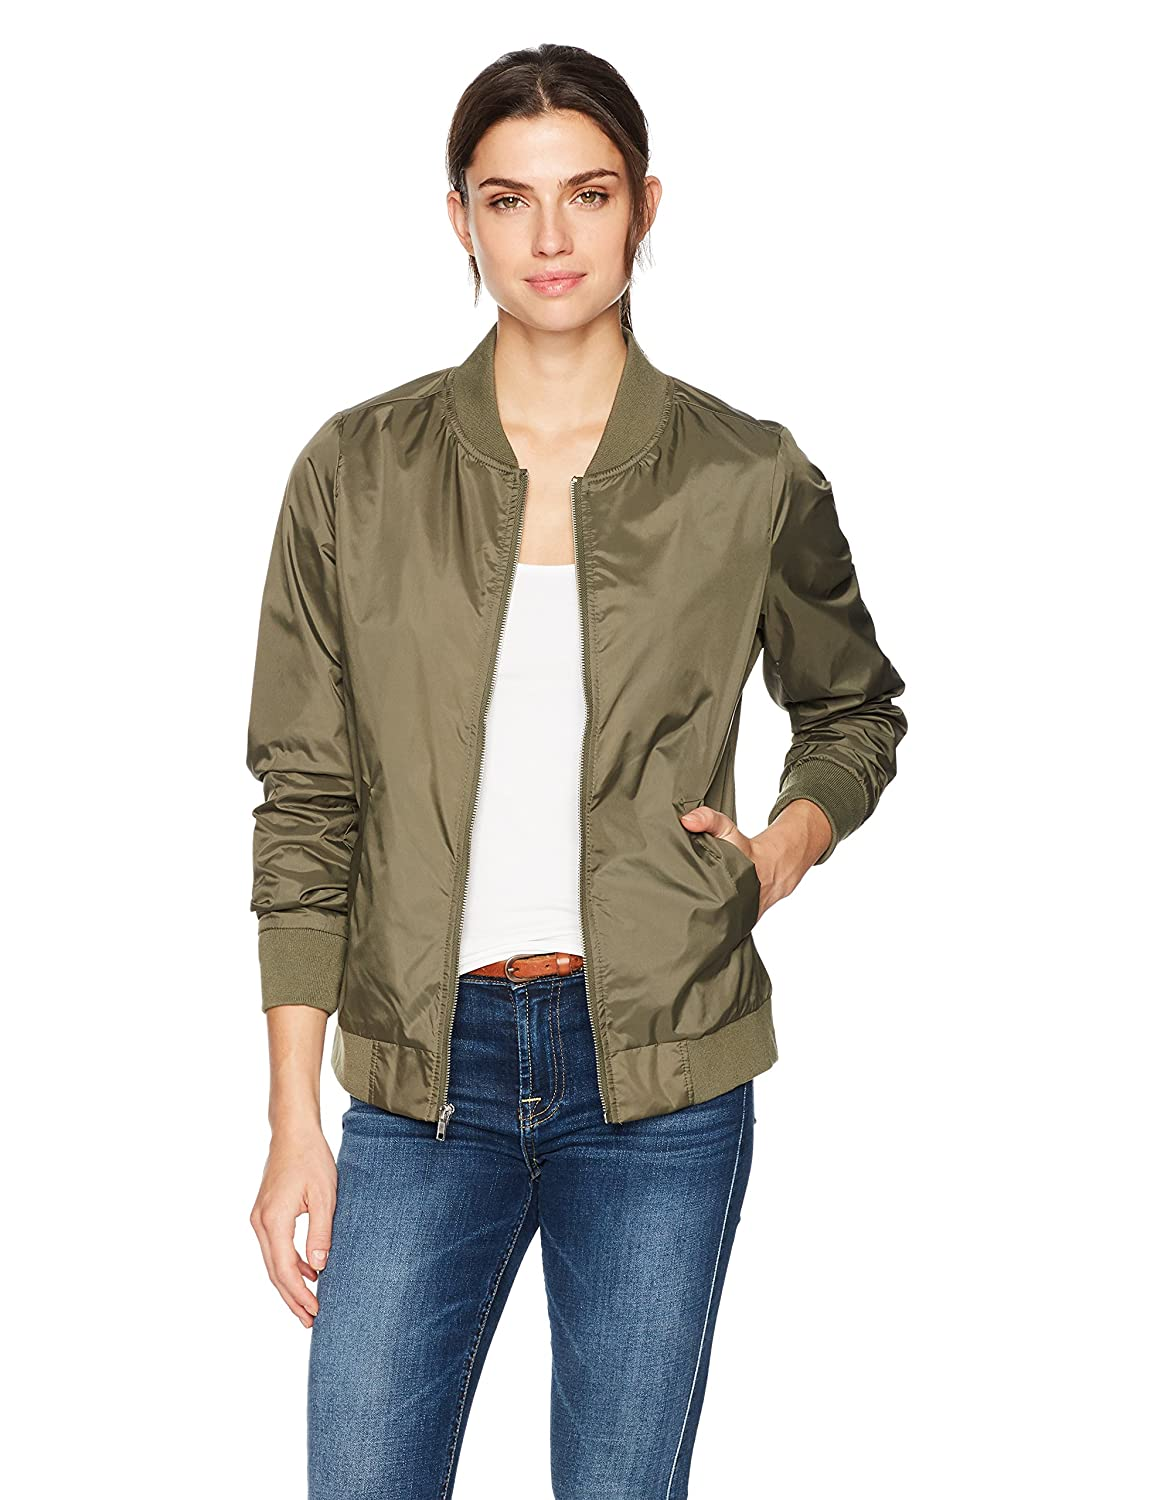 Charles River Apparel Women's Boston Flight Jacket 5824